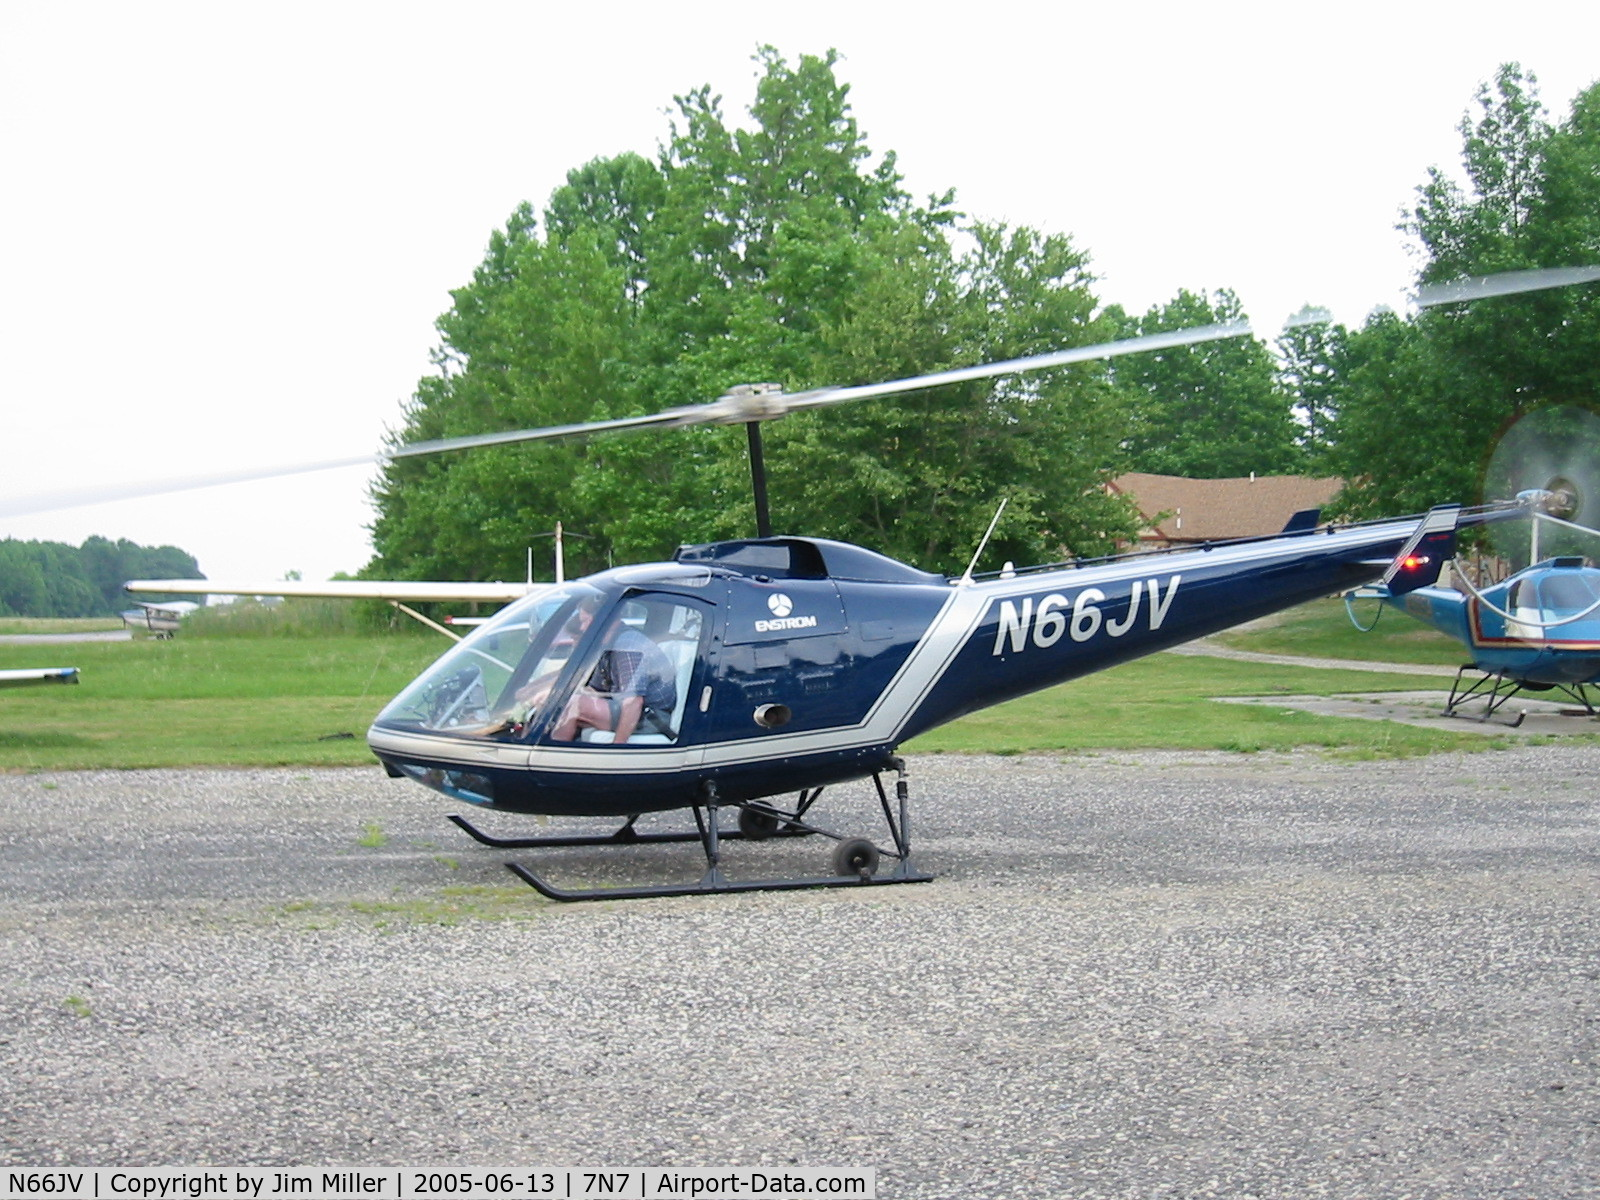 N66JV, 1978 Enstrom 280C Shark C/N 1151, 280c converted to 290FX